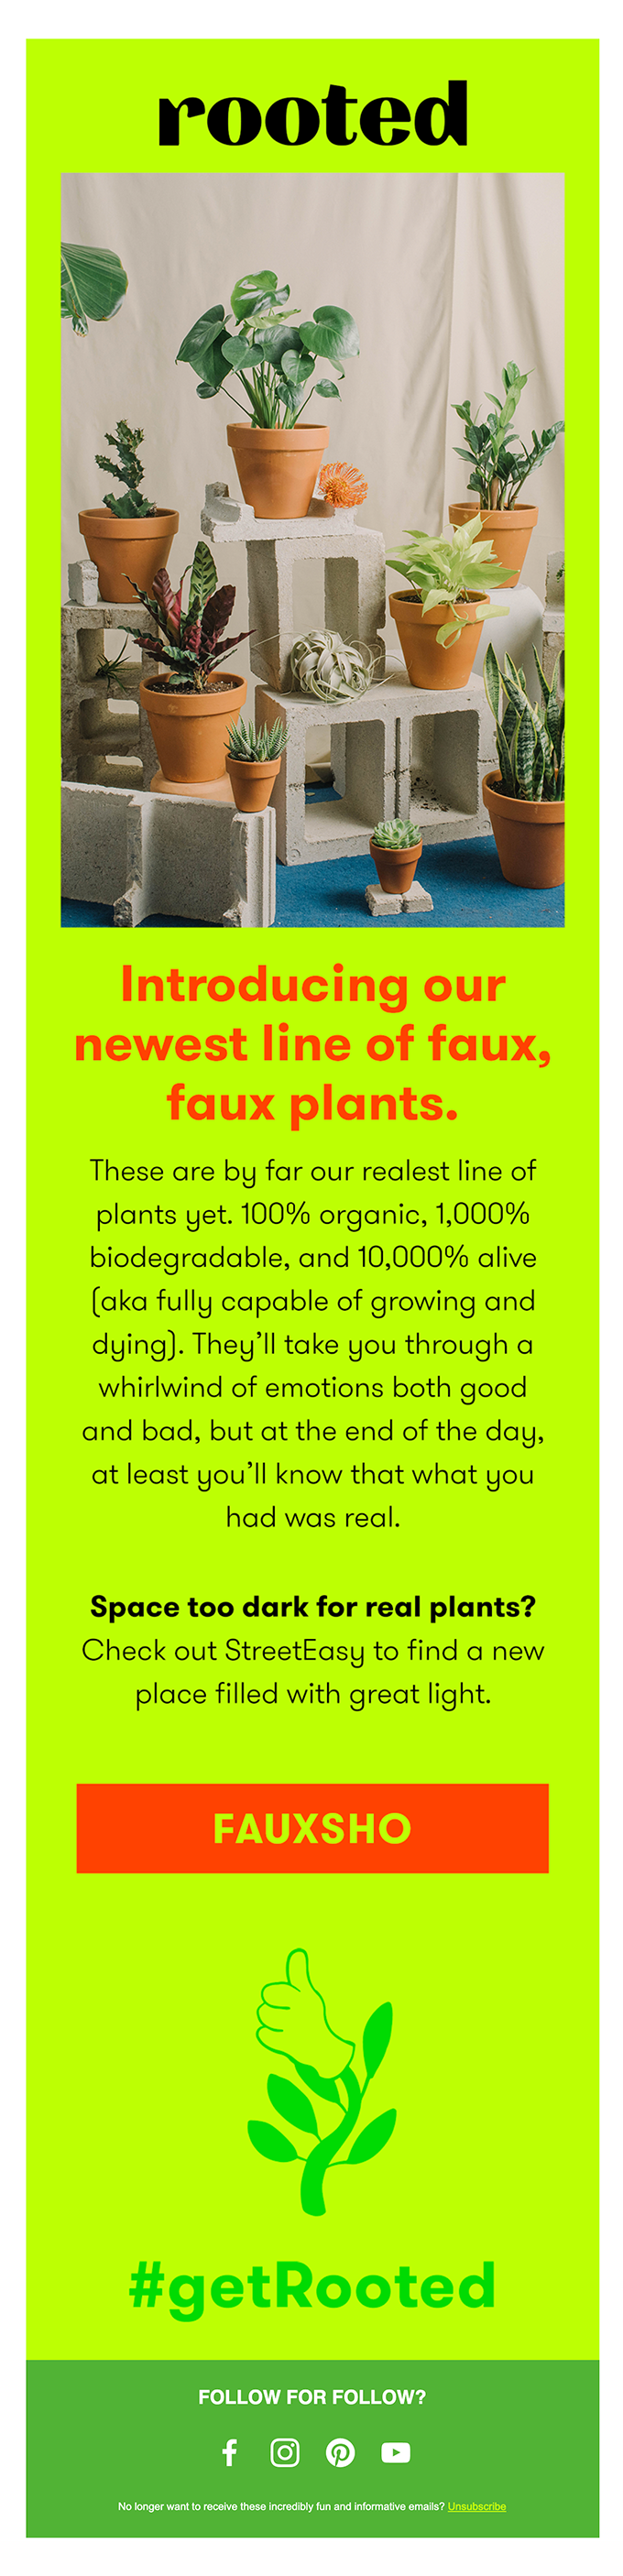 Introducing our NEW line of faux faux plants 🌱